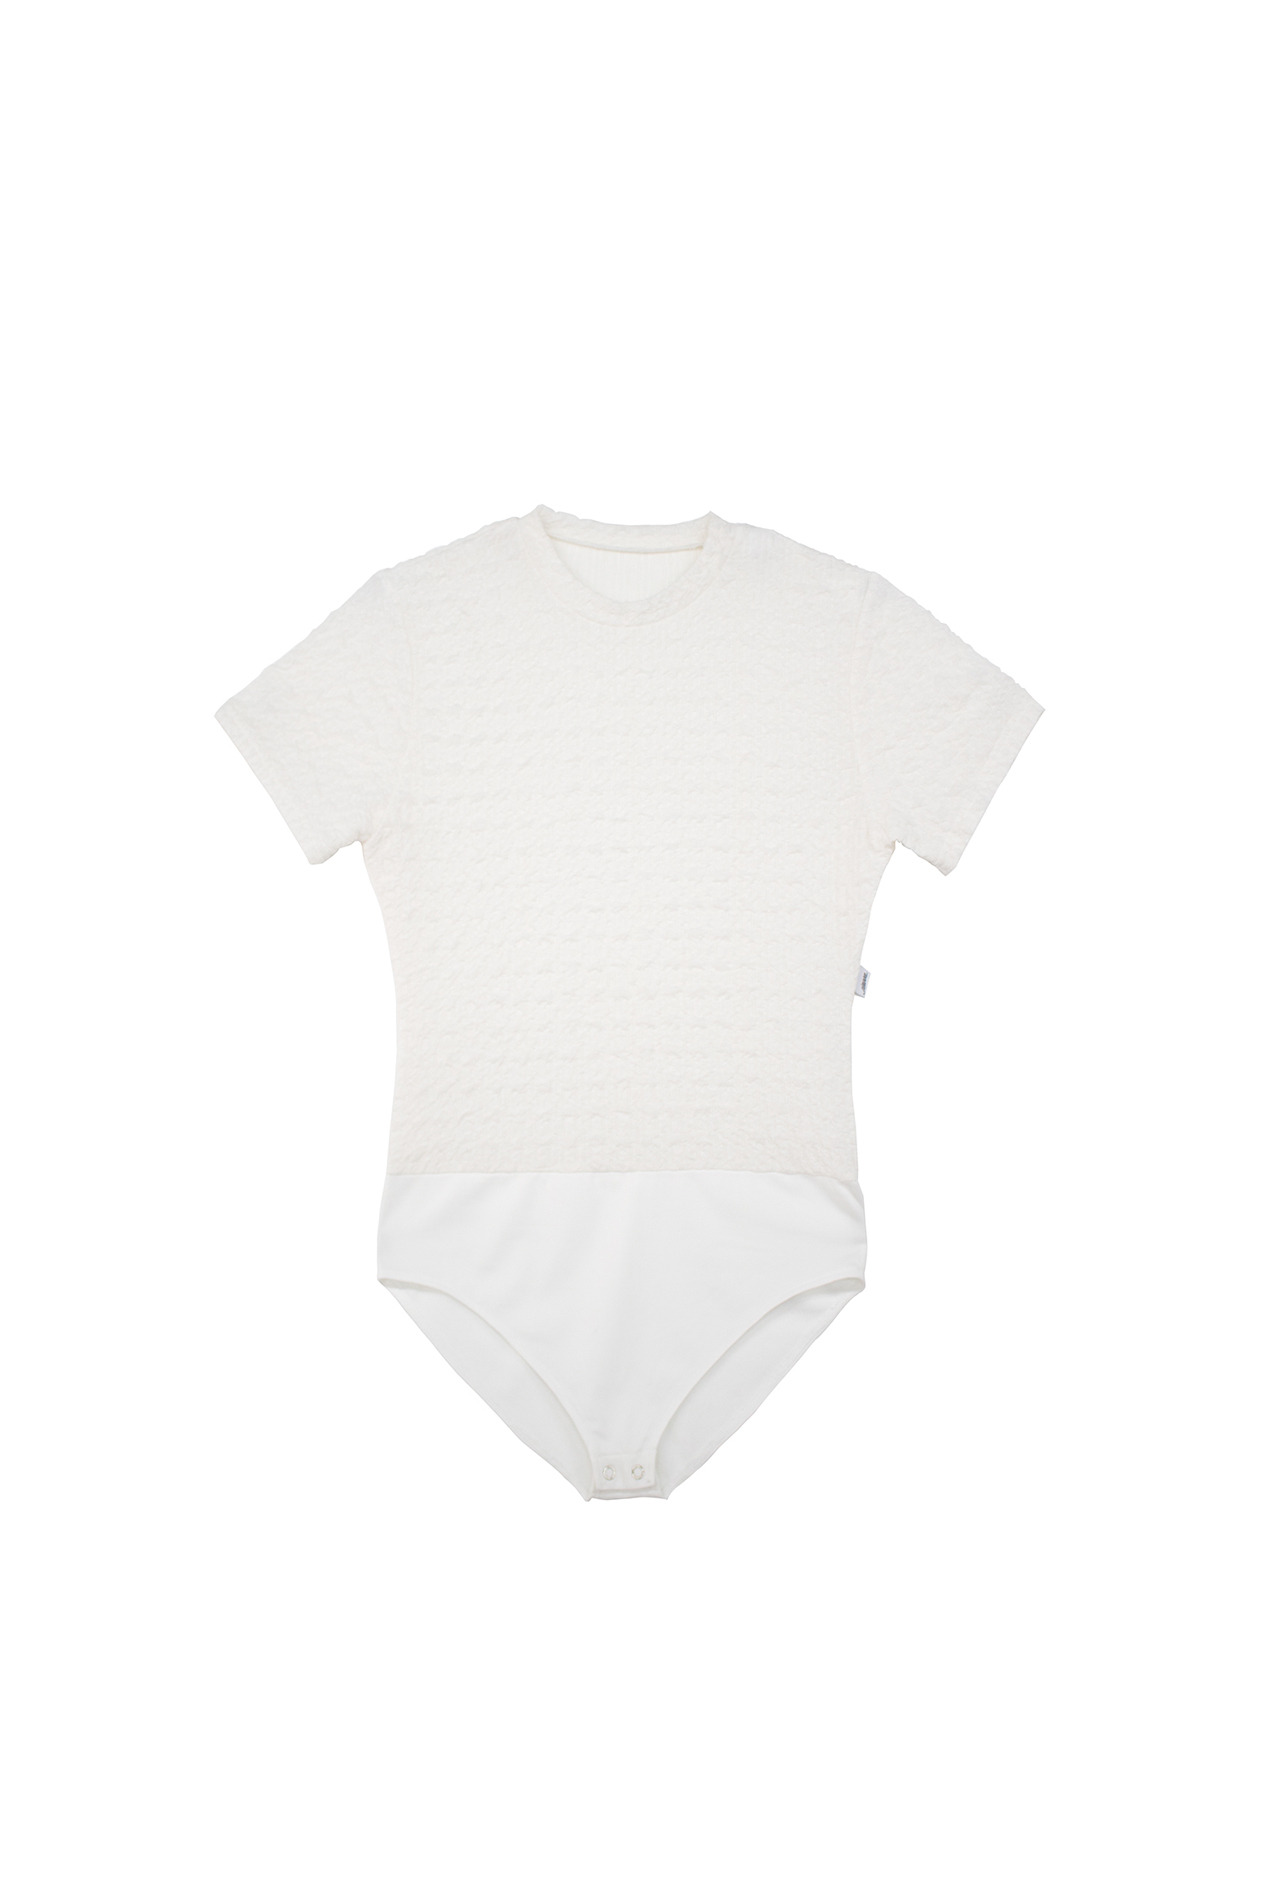 Textured Bodysuit (white)